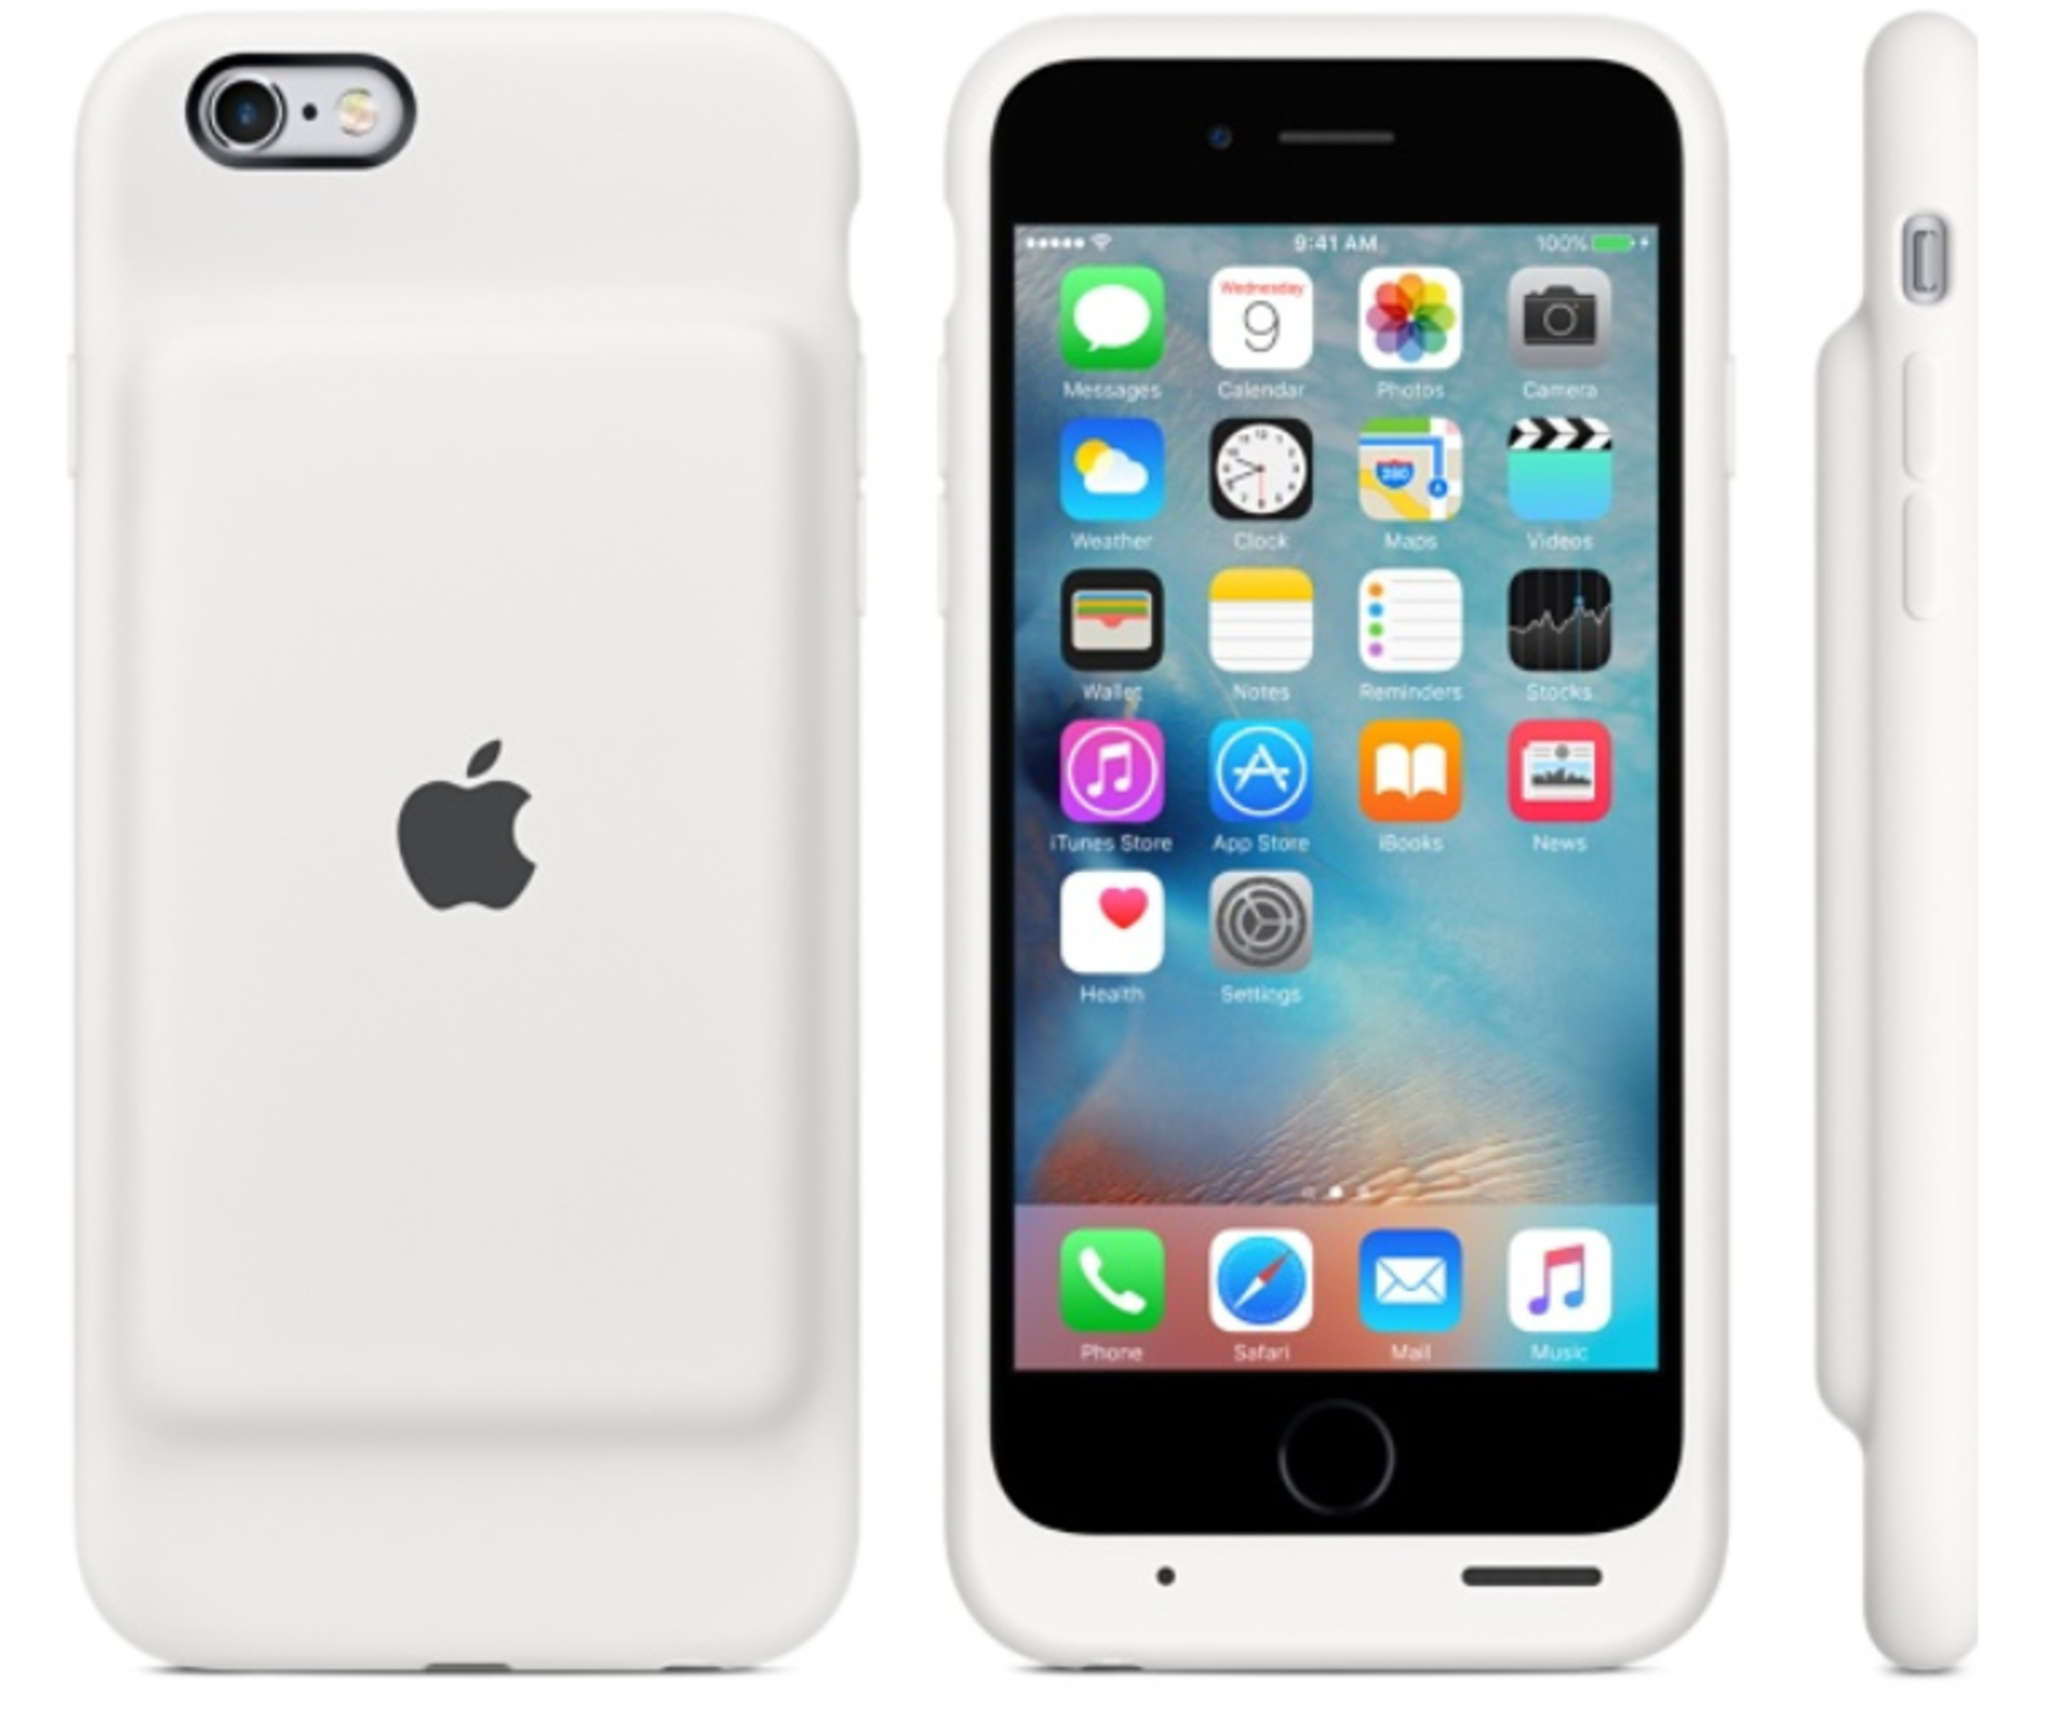 An iPhone 6S user will surely get a charge out of this Apple-branded Smart Battery Case.